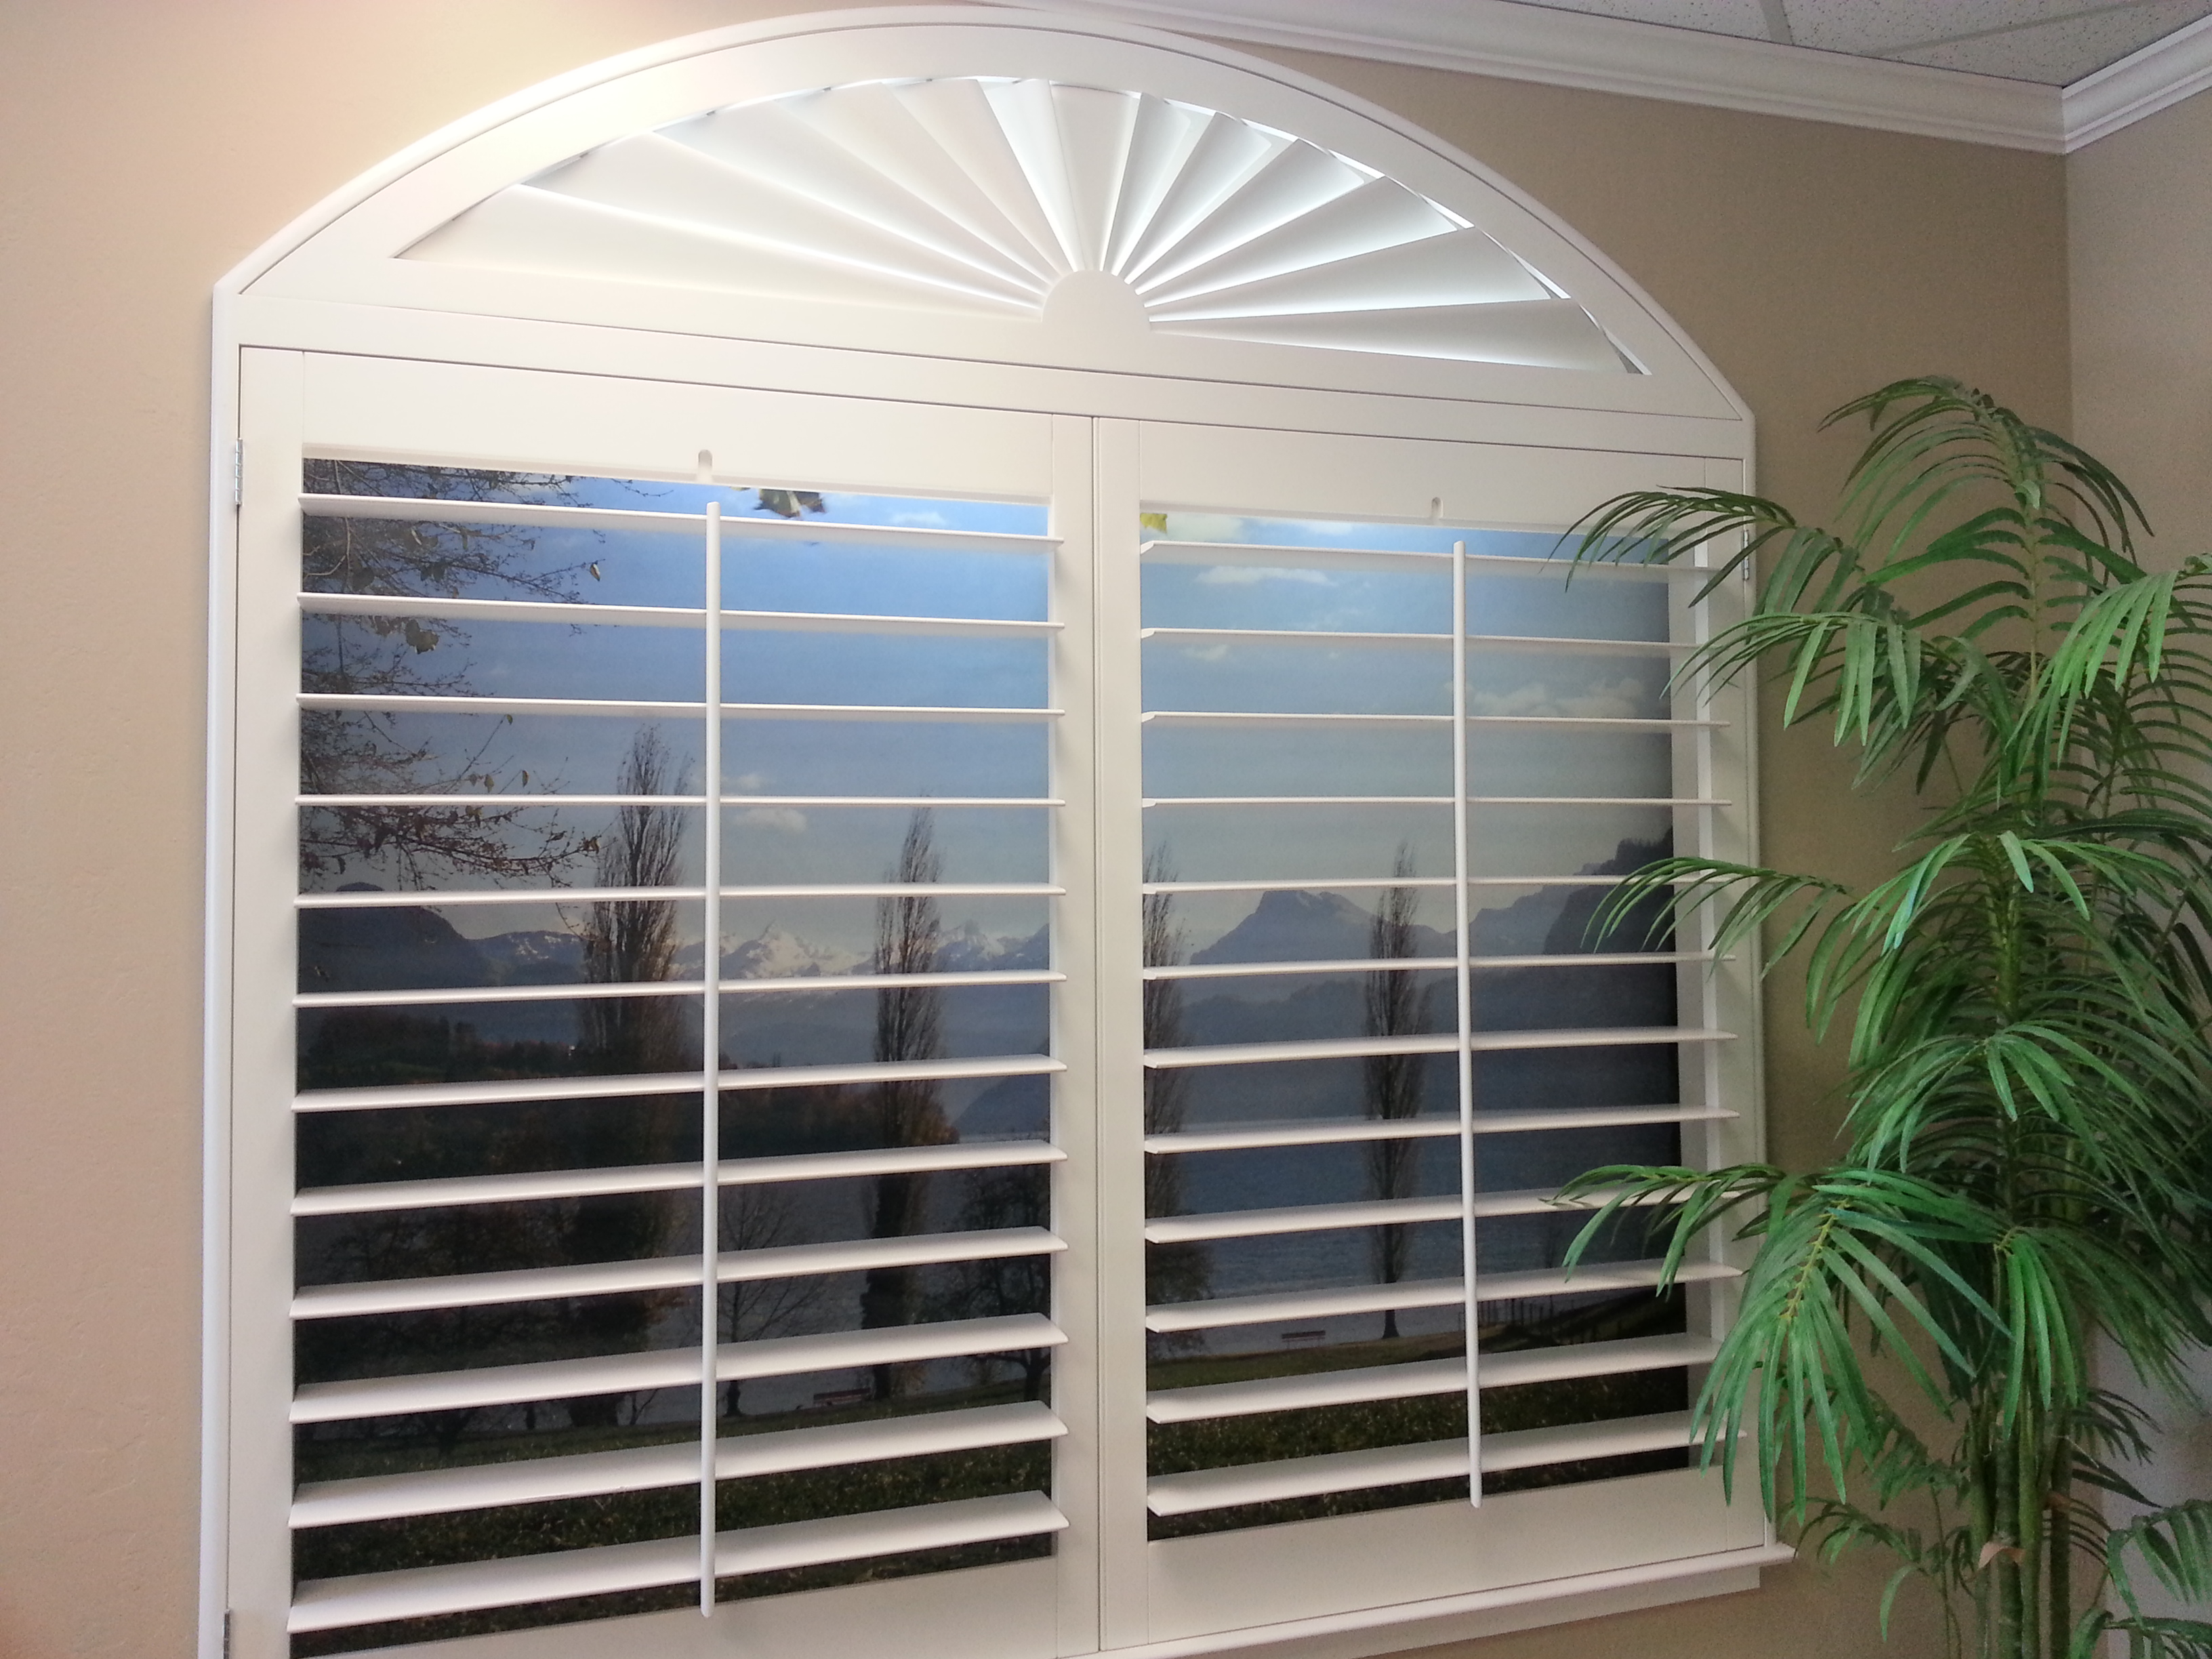 Wooden Window Shutters : Stylish window shutters for treatment ideas